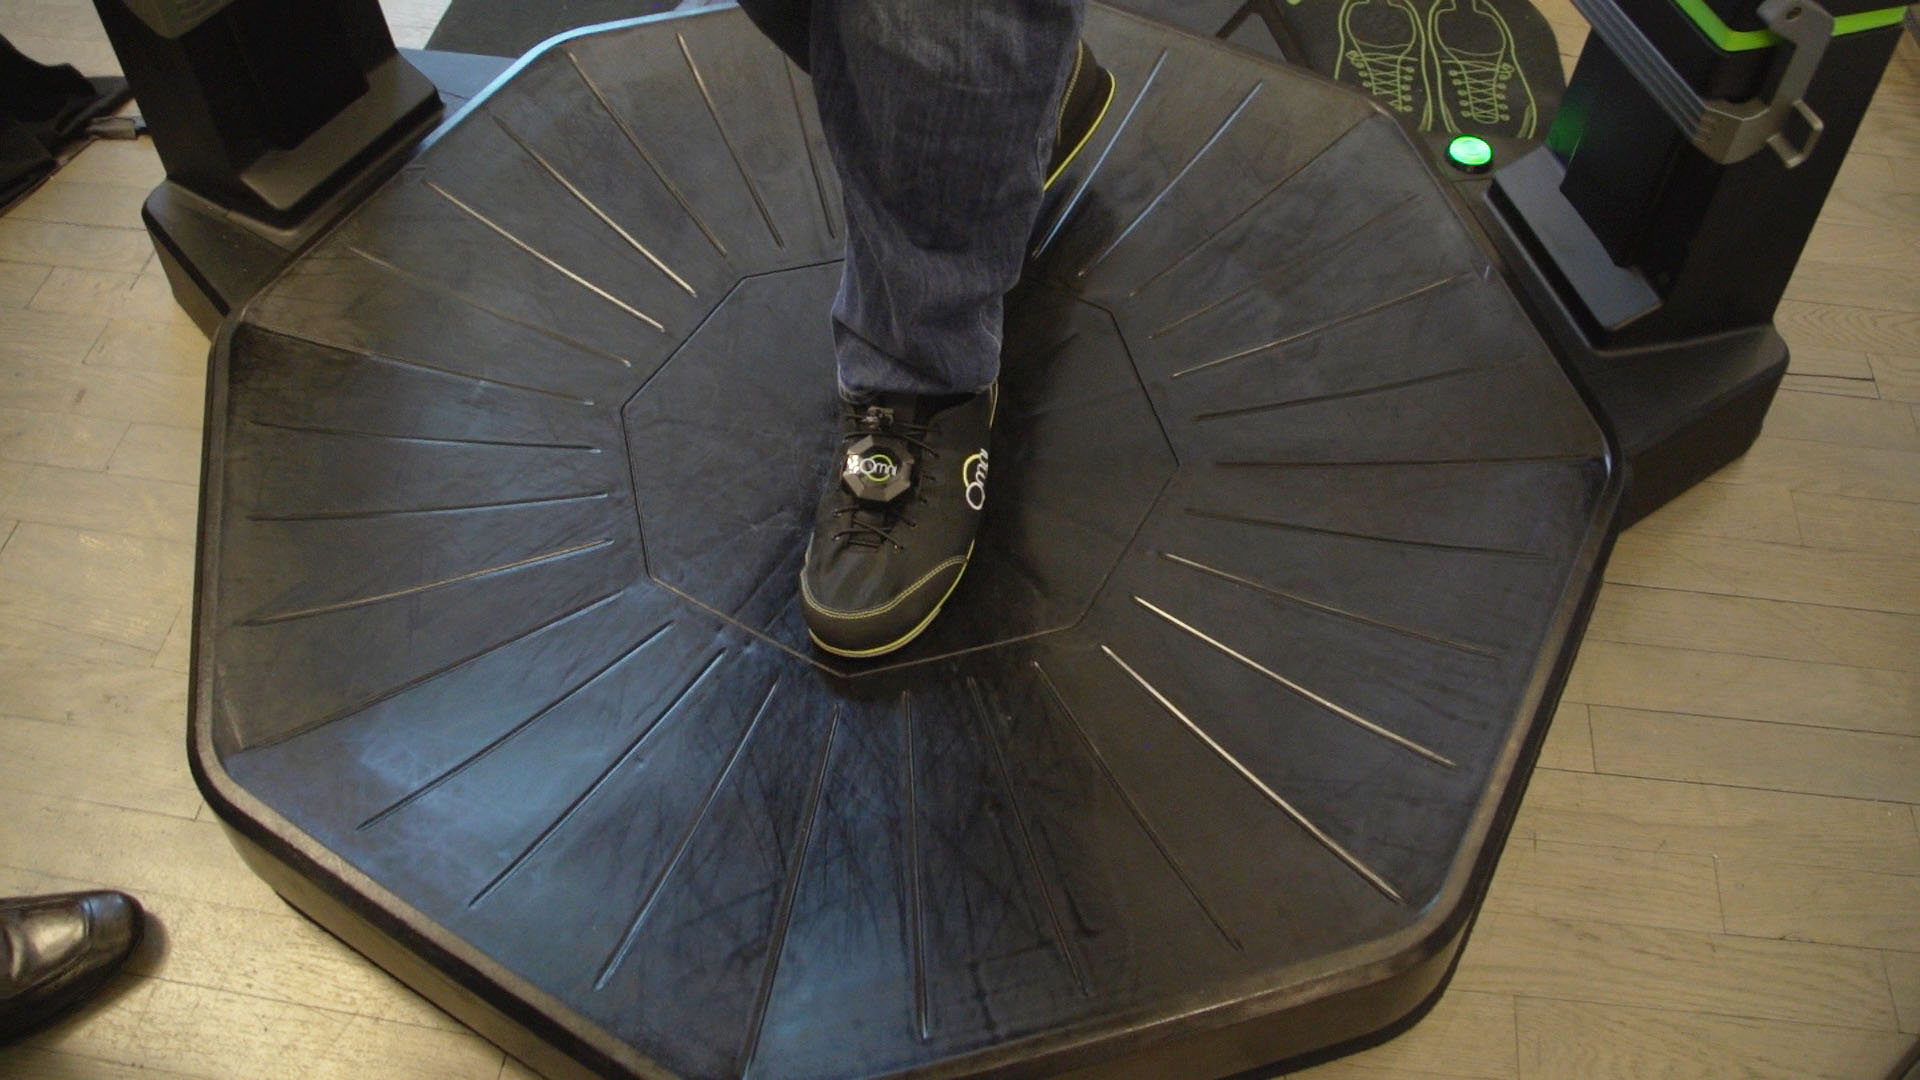 Video: 360-degree VR treadmill is finally available